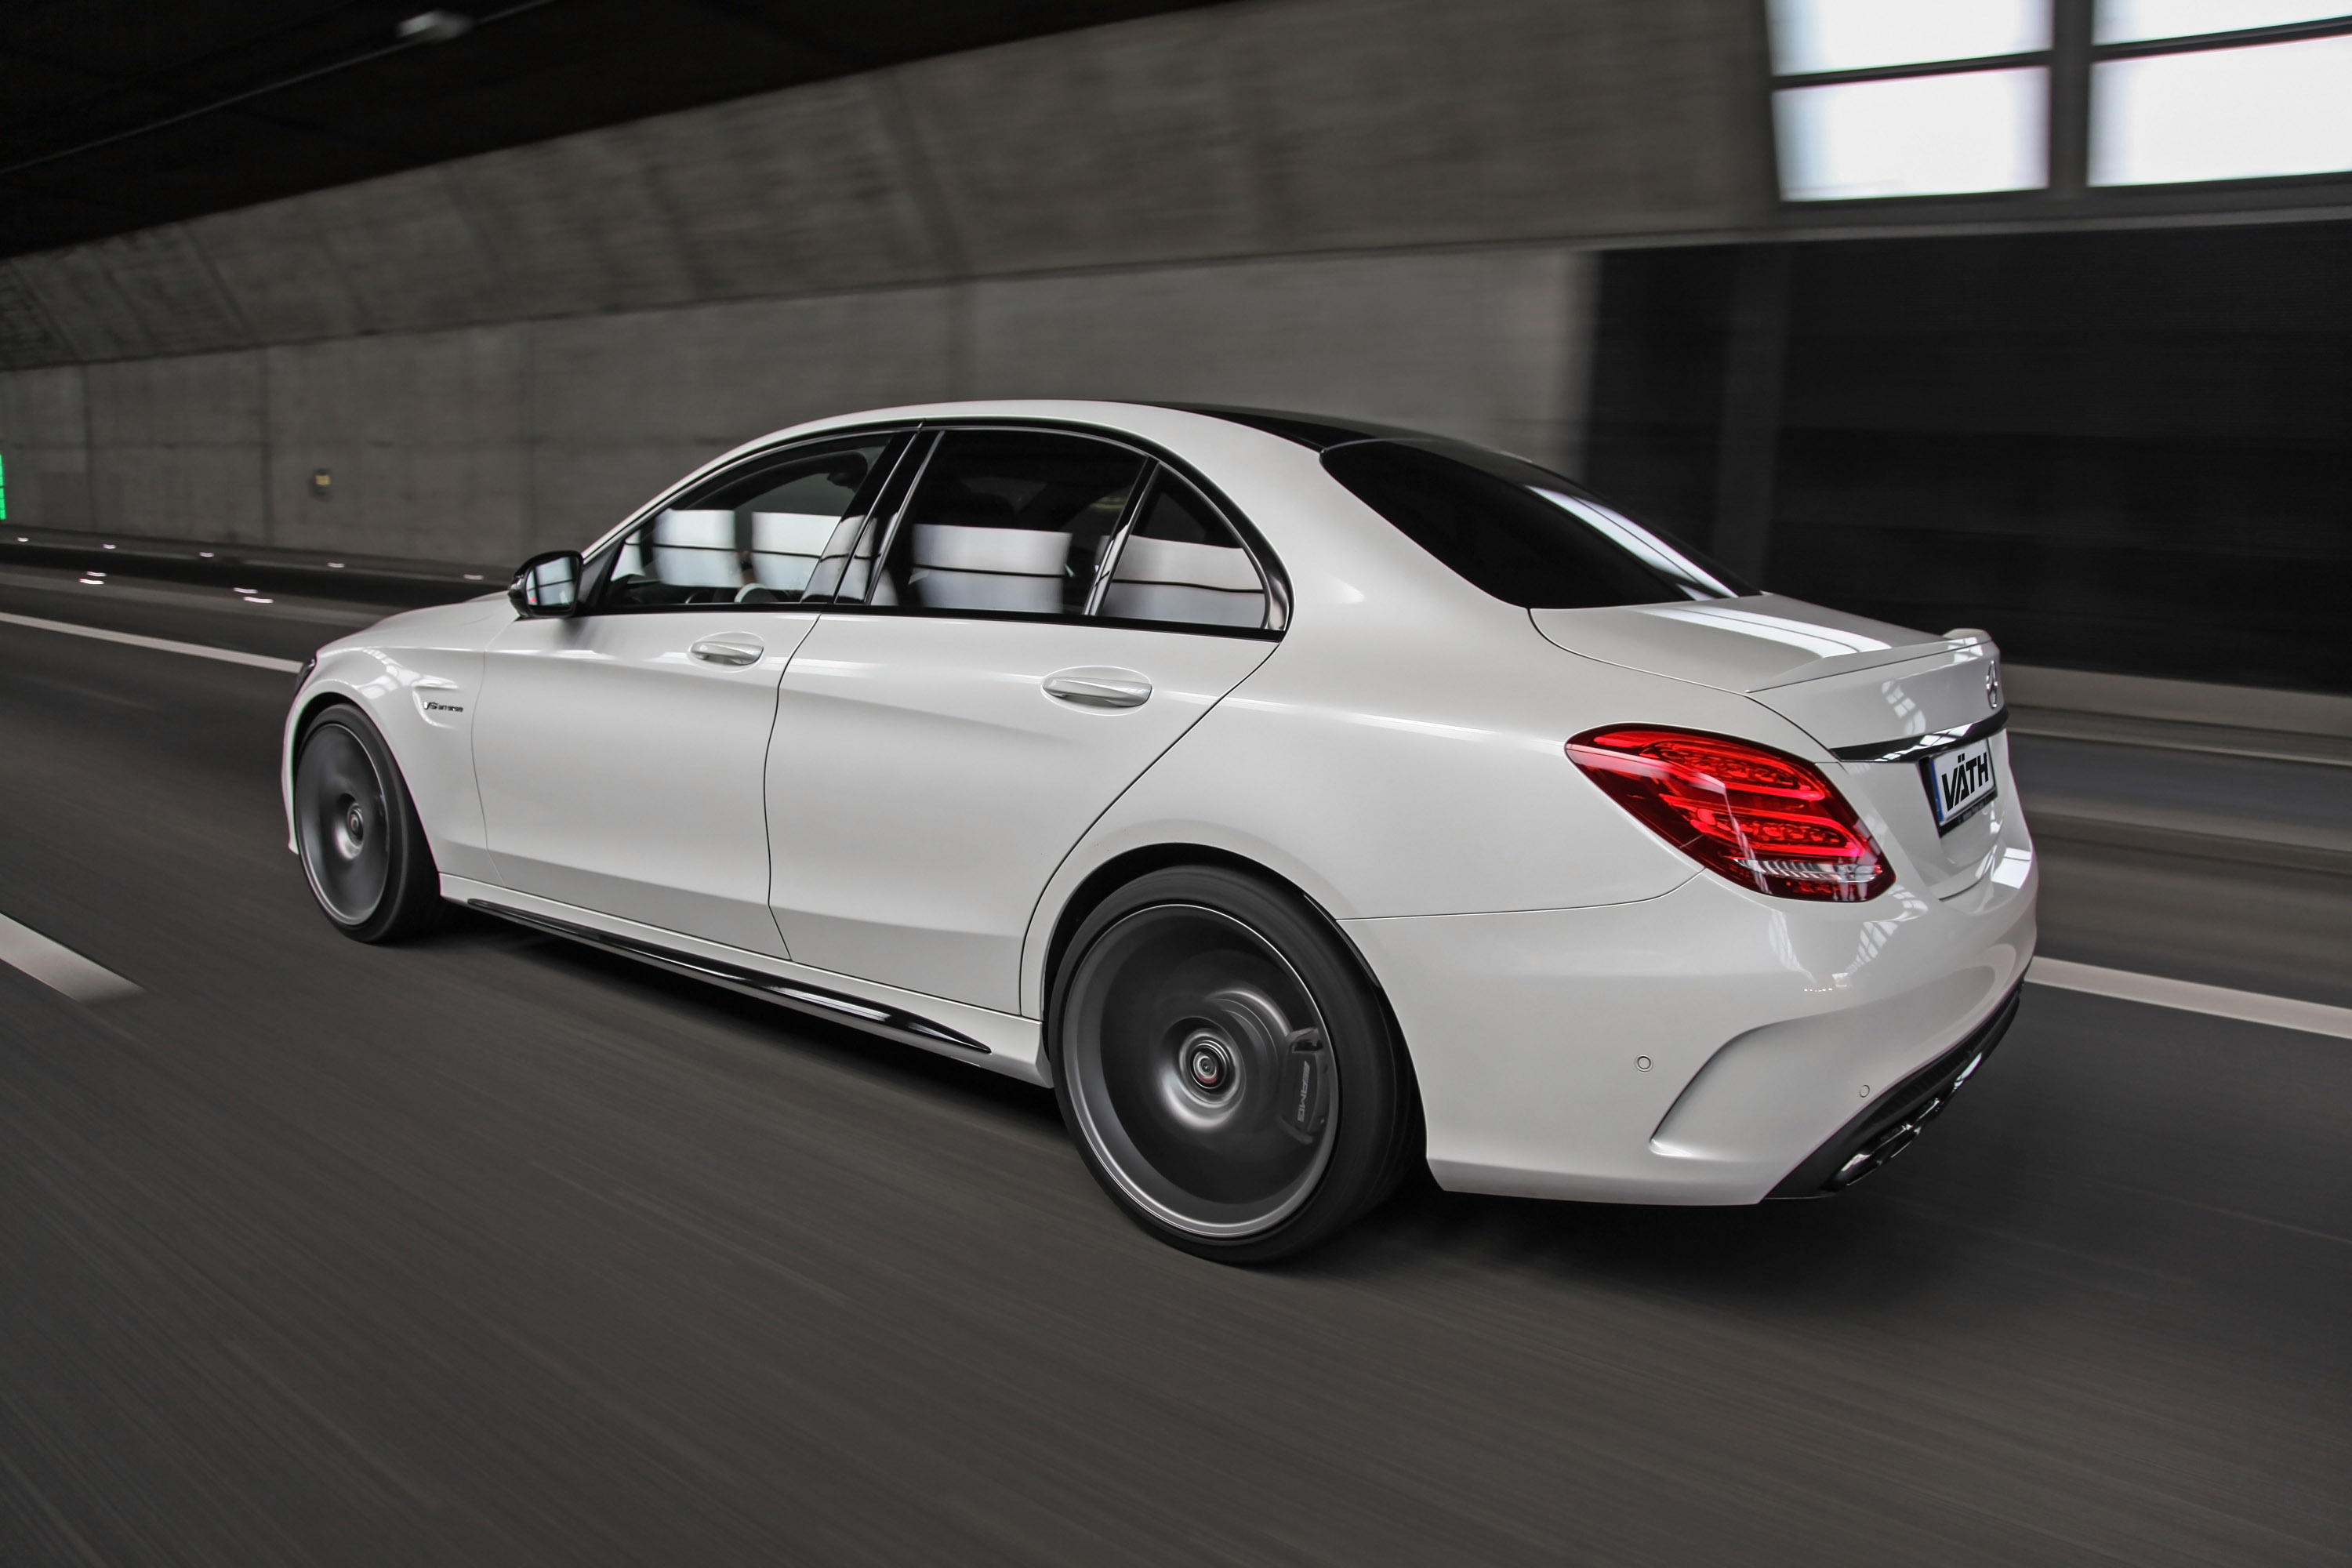 Vaeth mercedes benz c63 amg with up to 680 horsepower for Mercedes benz c 63